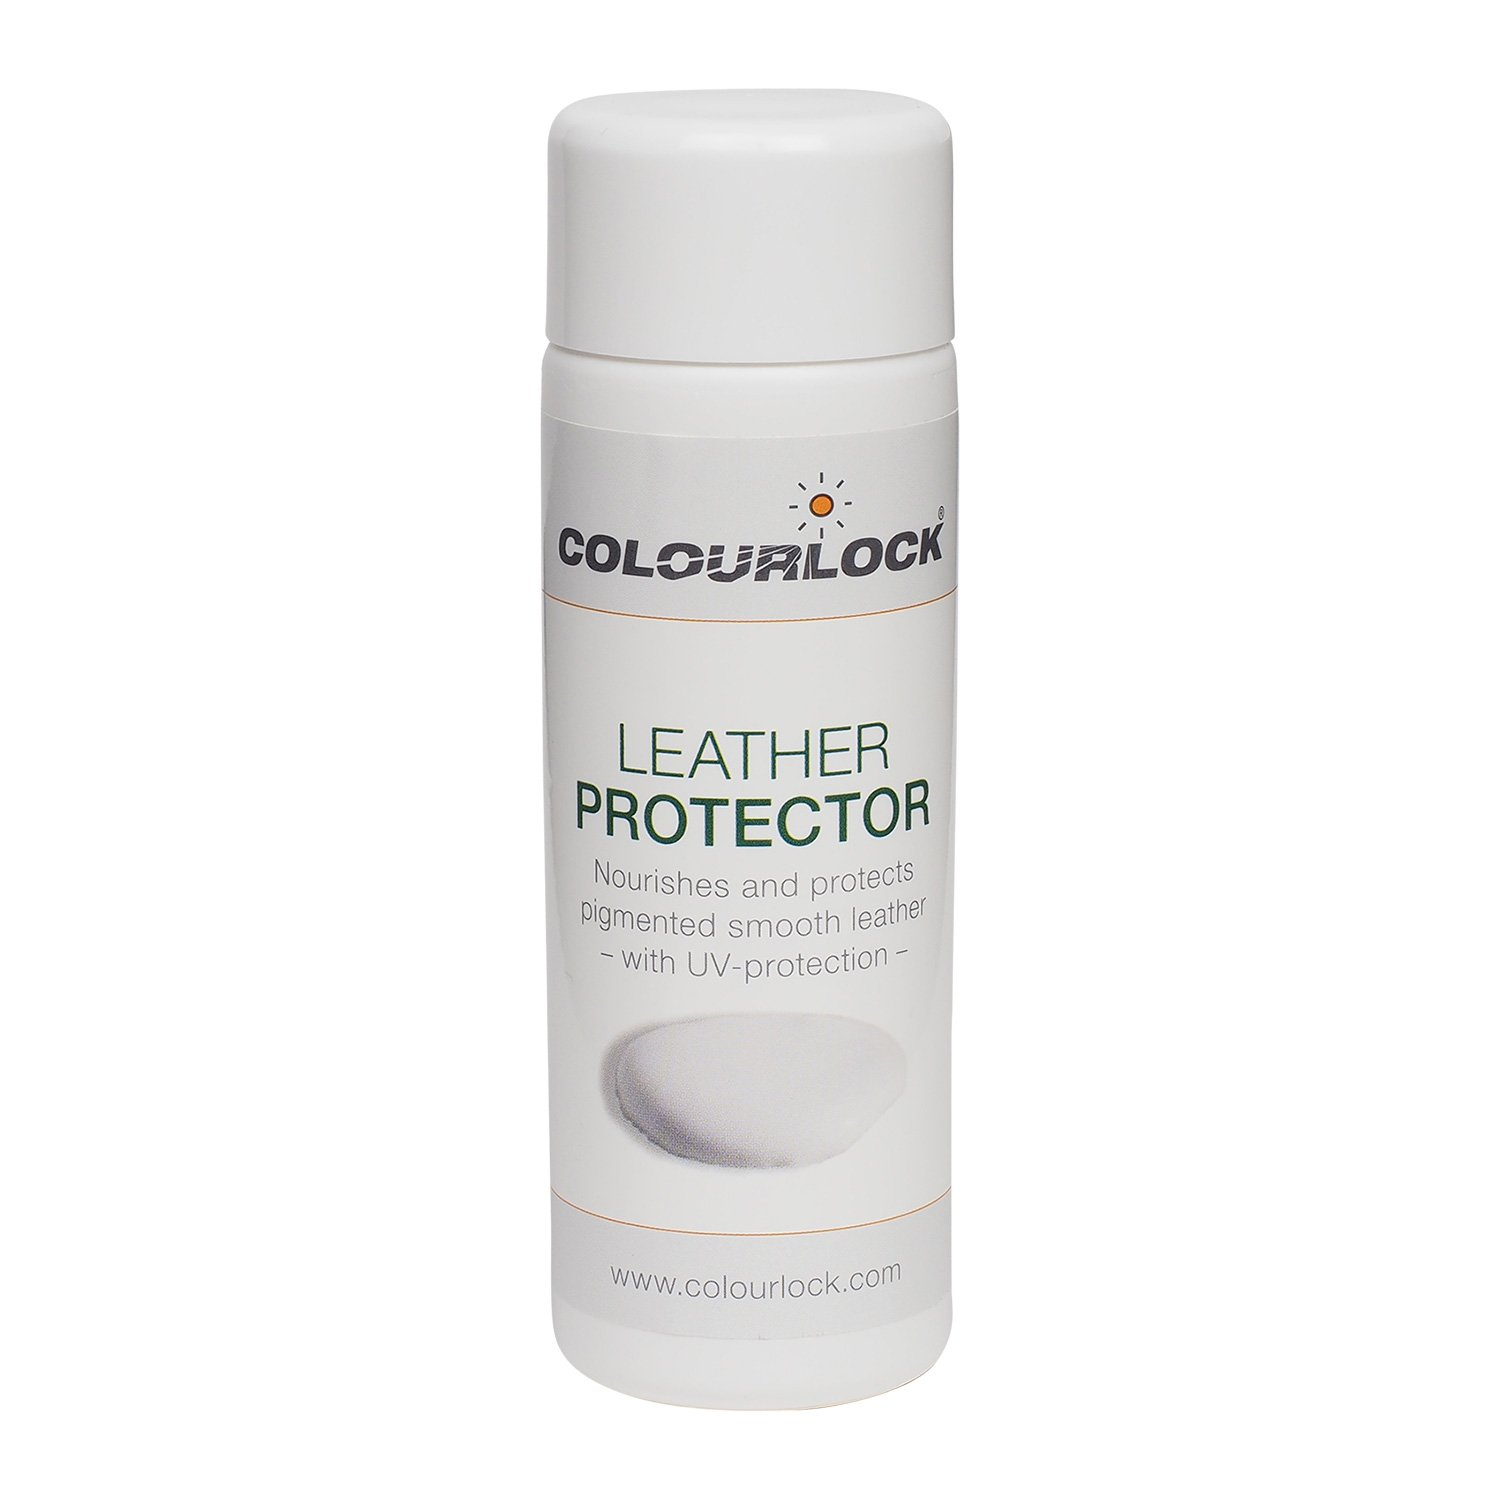 Colourlock Leather Protector Feed, Cream, Restorer car Leather interiors, Furniture, Bags Clothing (150 ml) by Colourlock